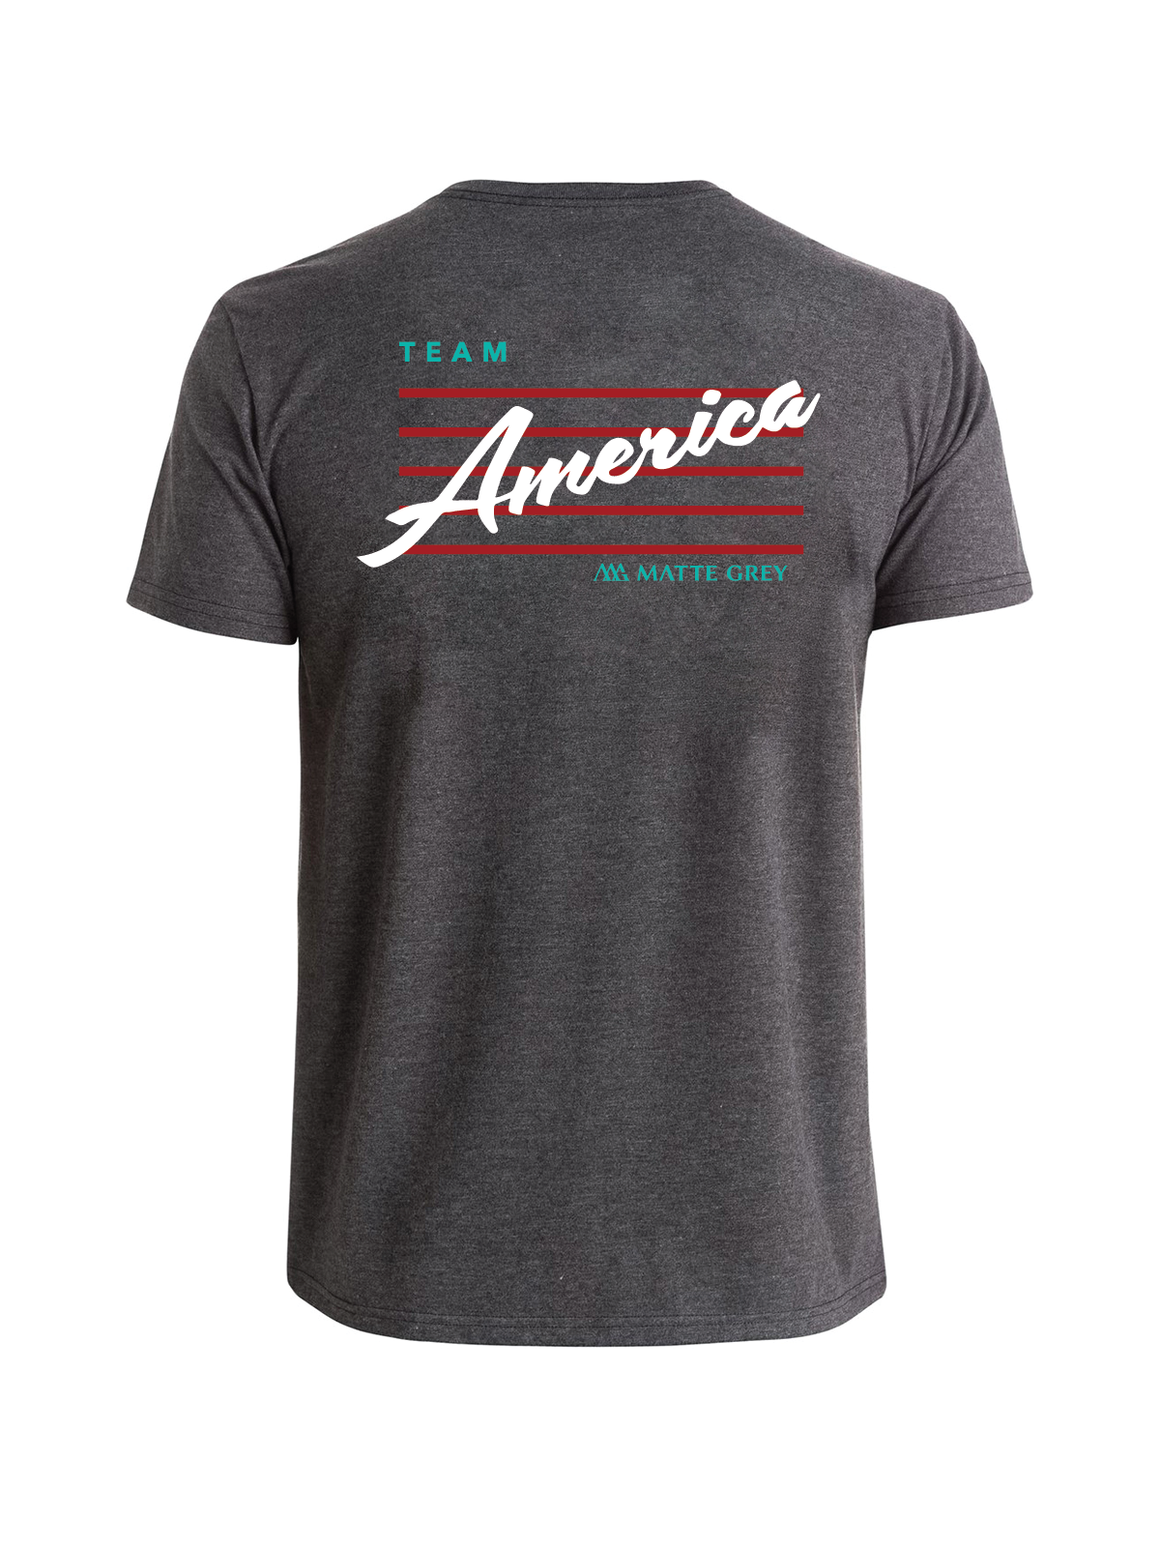 Team America Tee Shirt - Charcoal Heather (White / Red / Kauai)